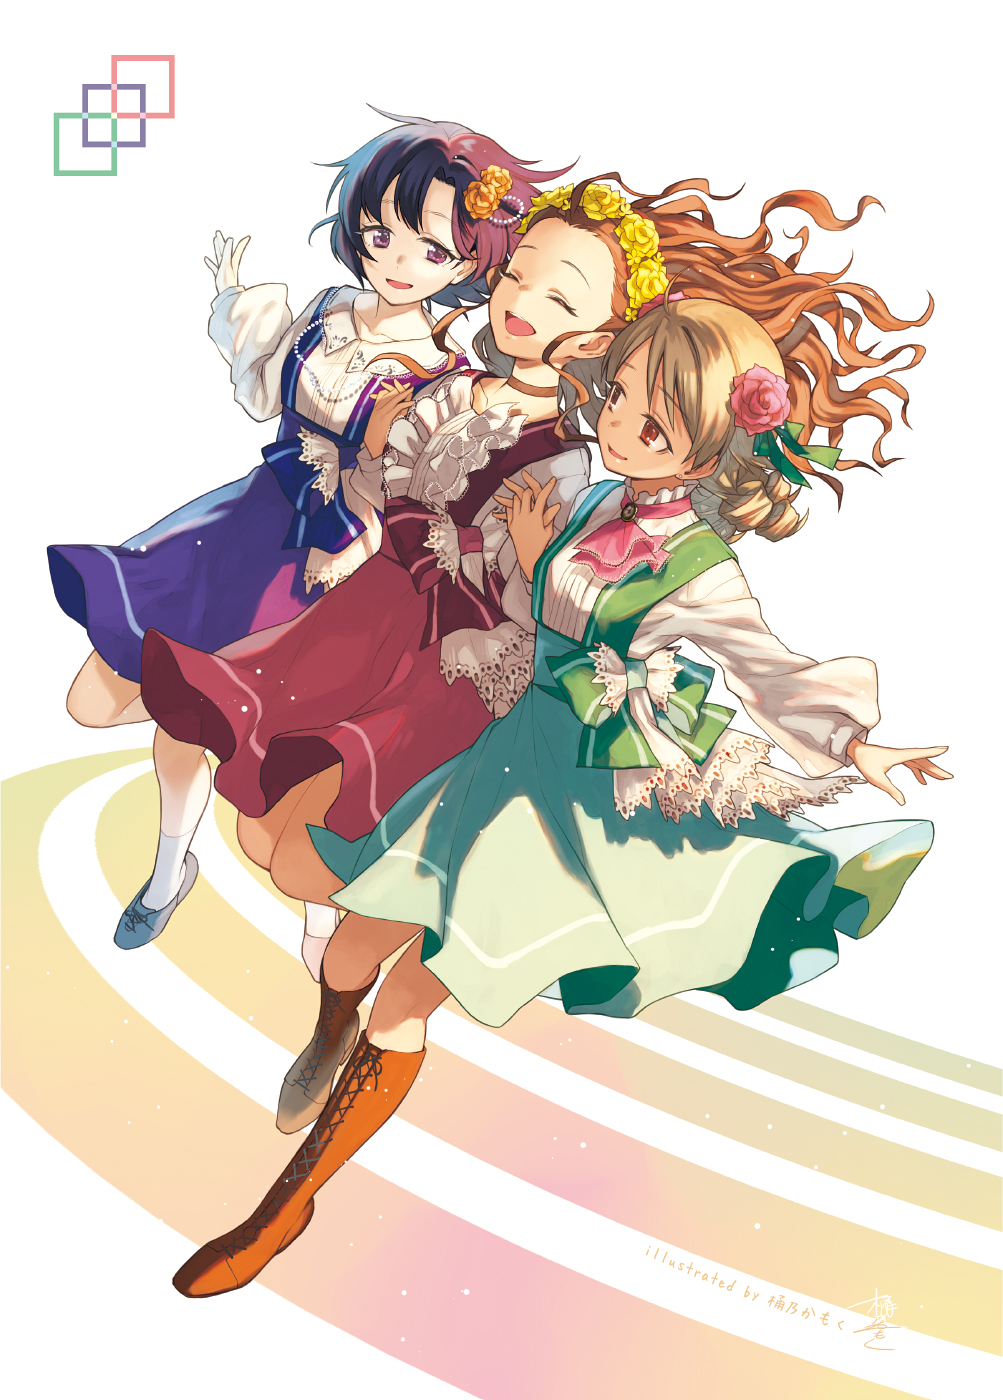 3girls :d black_hair blue_dress blue_footwear boots bow brown_eyes brown_footwear brown_hair closed_eyes cross-laced_footwear dress flower green_bow green_dress hair_flower hair_ornament head_wreath highres idolmaster idolmaster_cinderella_girls idolmaster_cinderella_girls_starlight_stage jumping long_sleeves morikubo_nono multiple_girls okeno_kamoku open_mouth red_dress seki_hiromi shiragiku_hotaru short_hair simple_background smile white_legwear